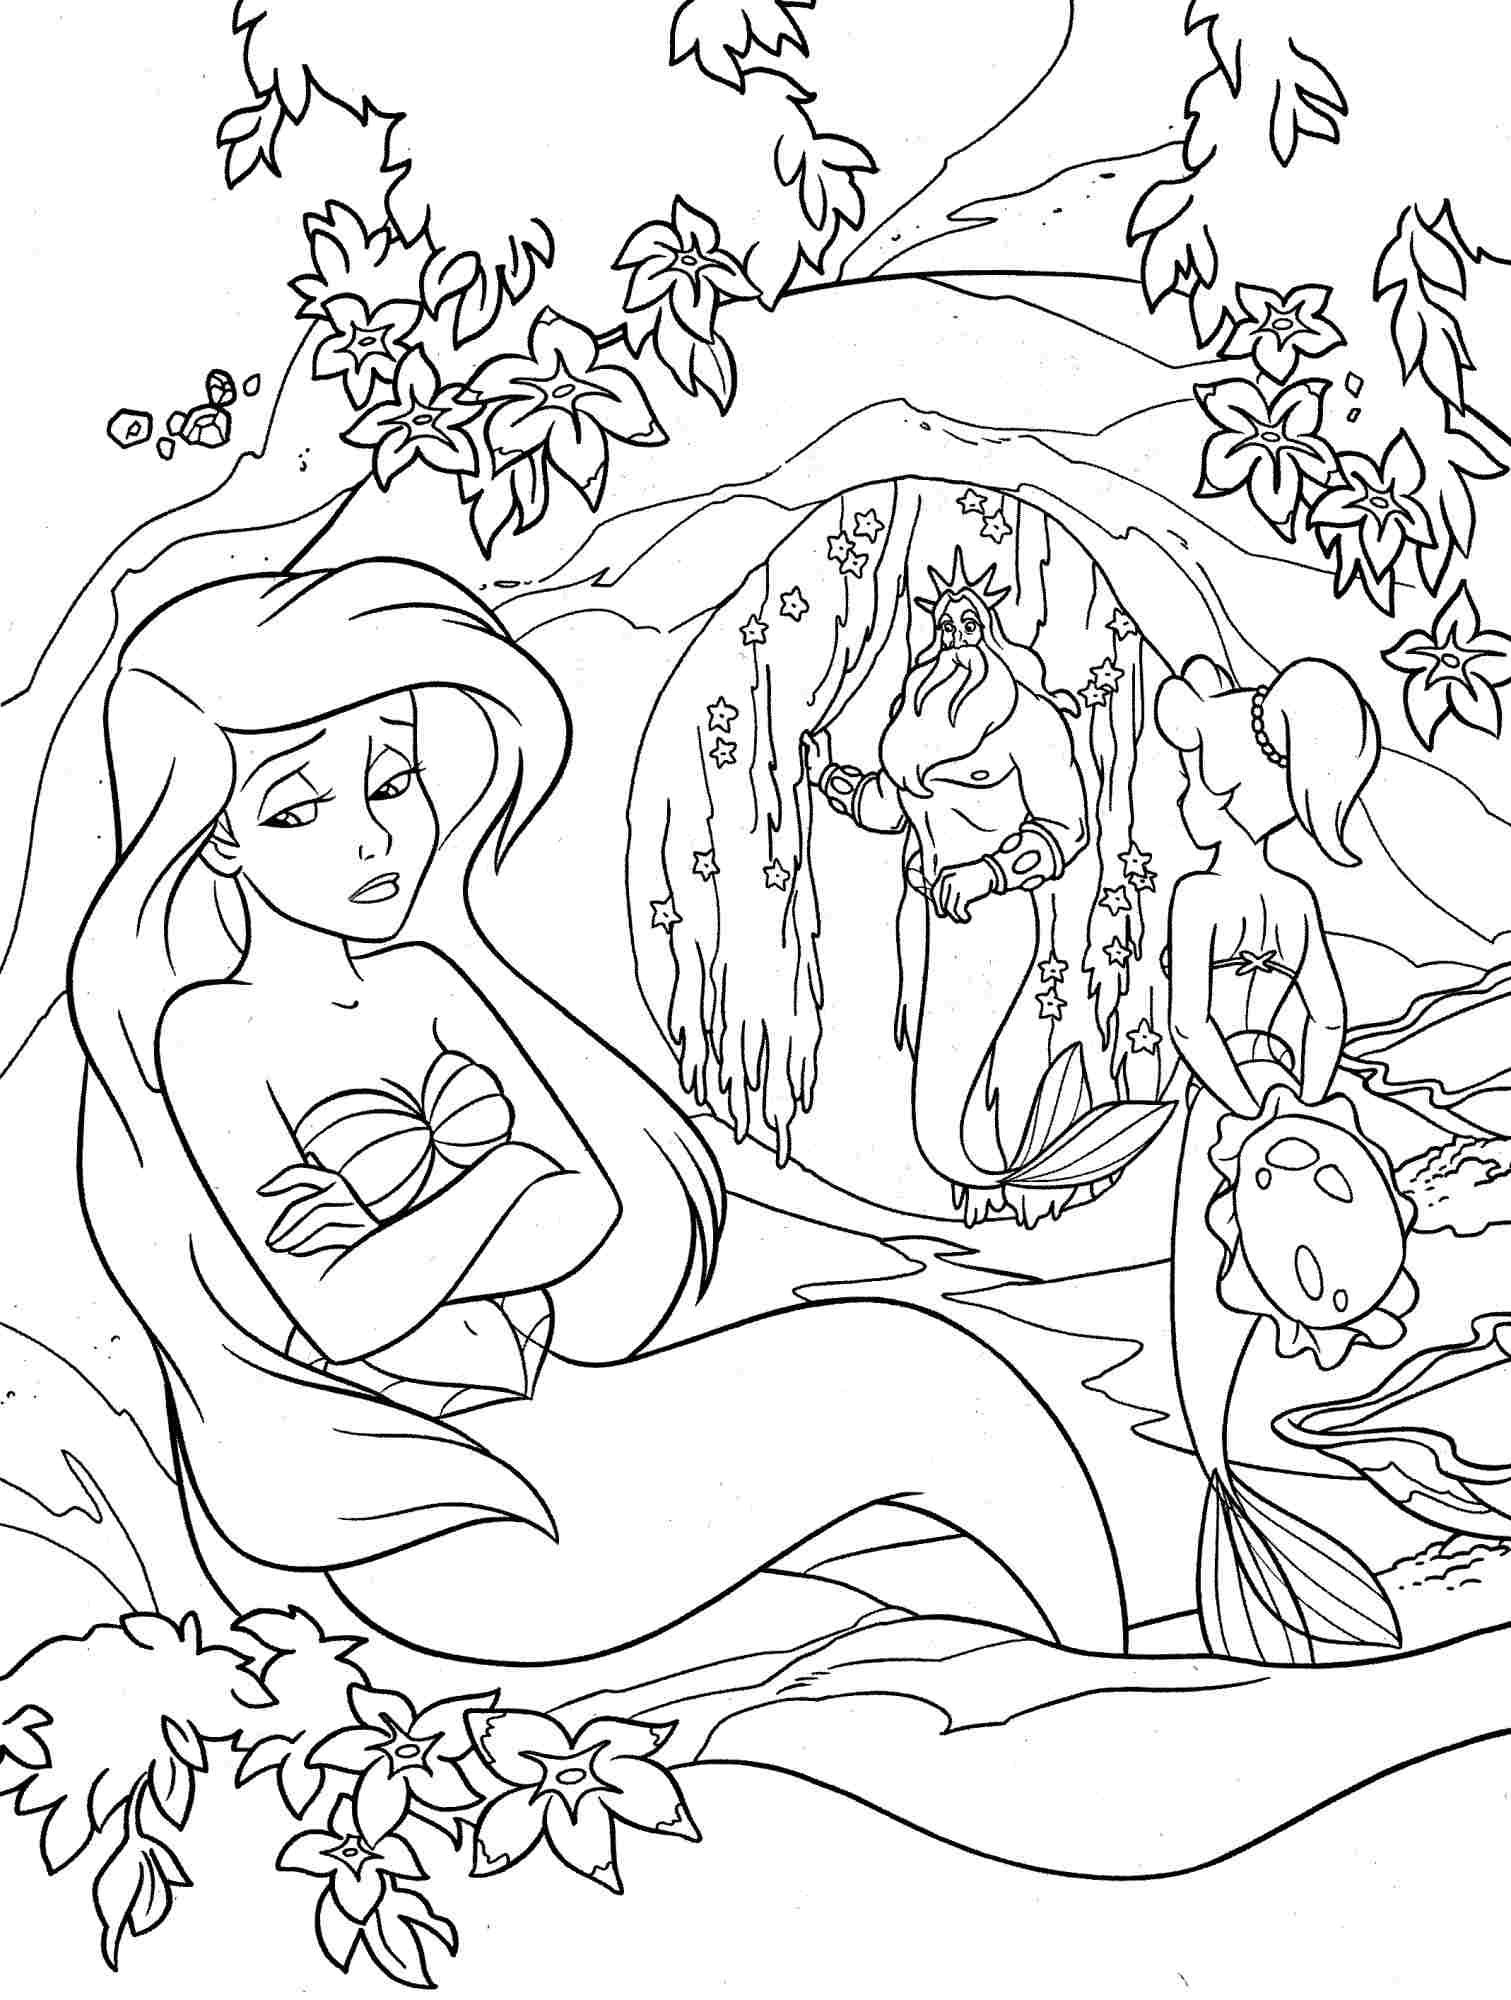 Little Mermaid Coloring Pages Disney #1 | under the sea | Pinterest ...